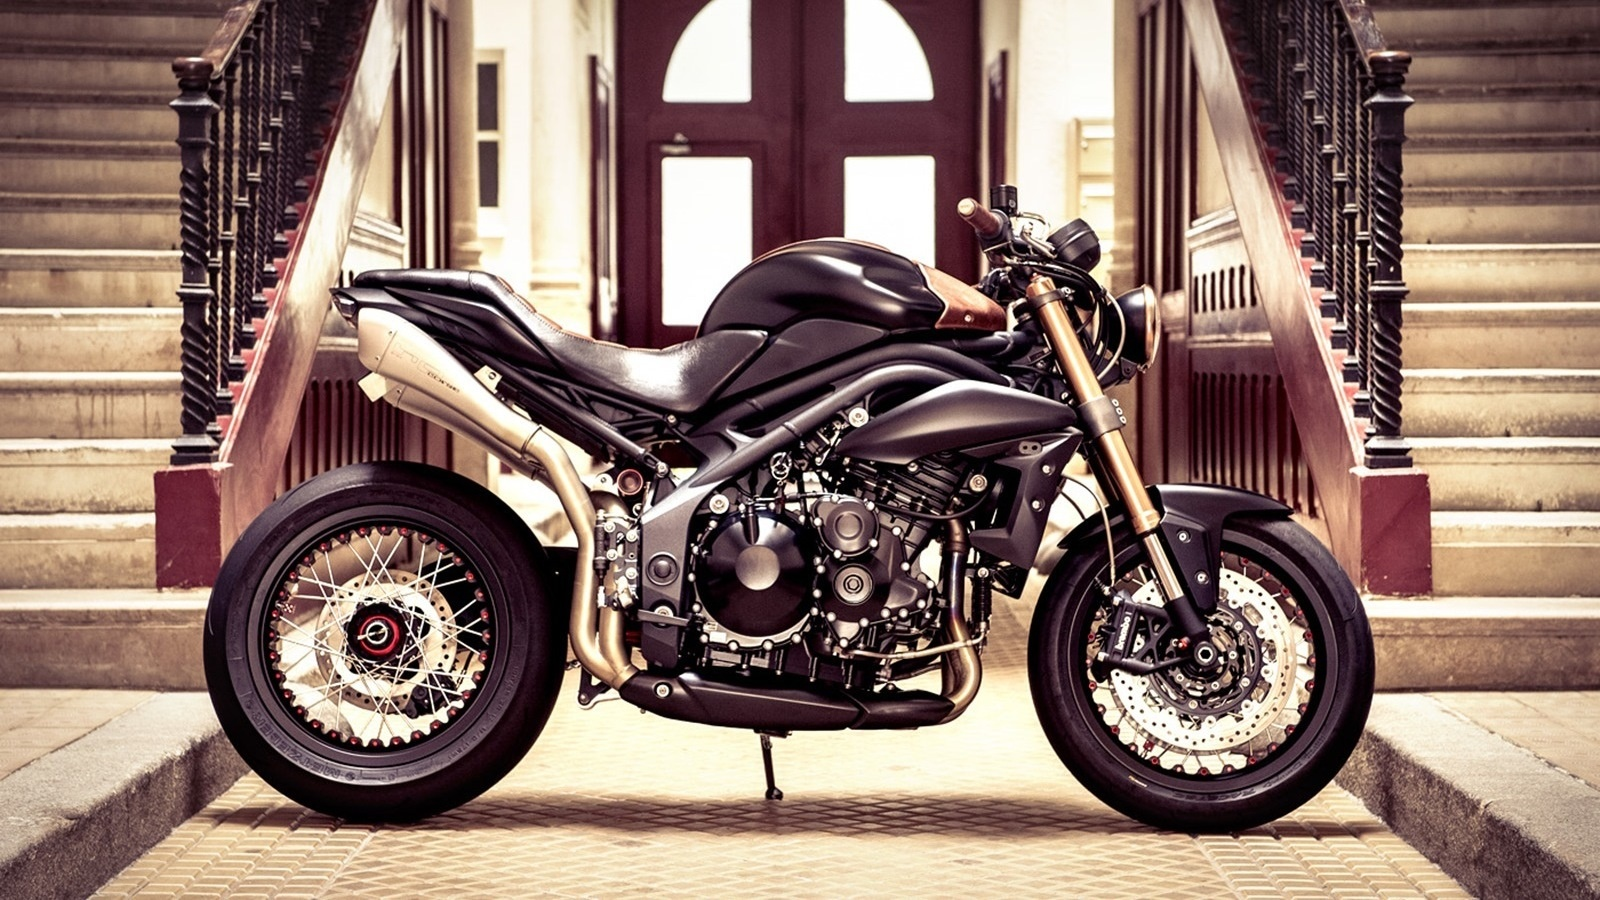 triumph speed triple cafe wallpapers - 1600x900 - 565004